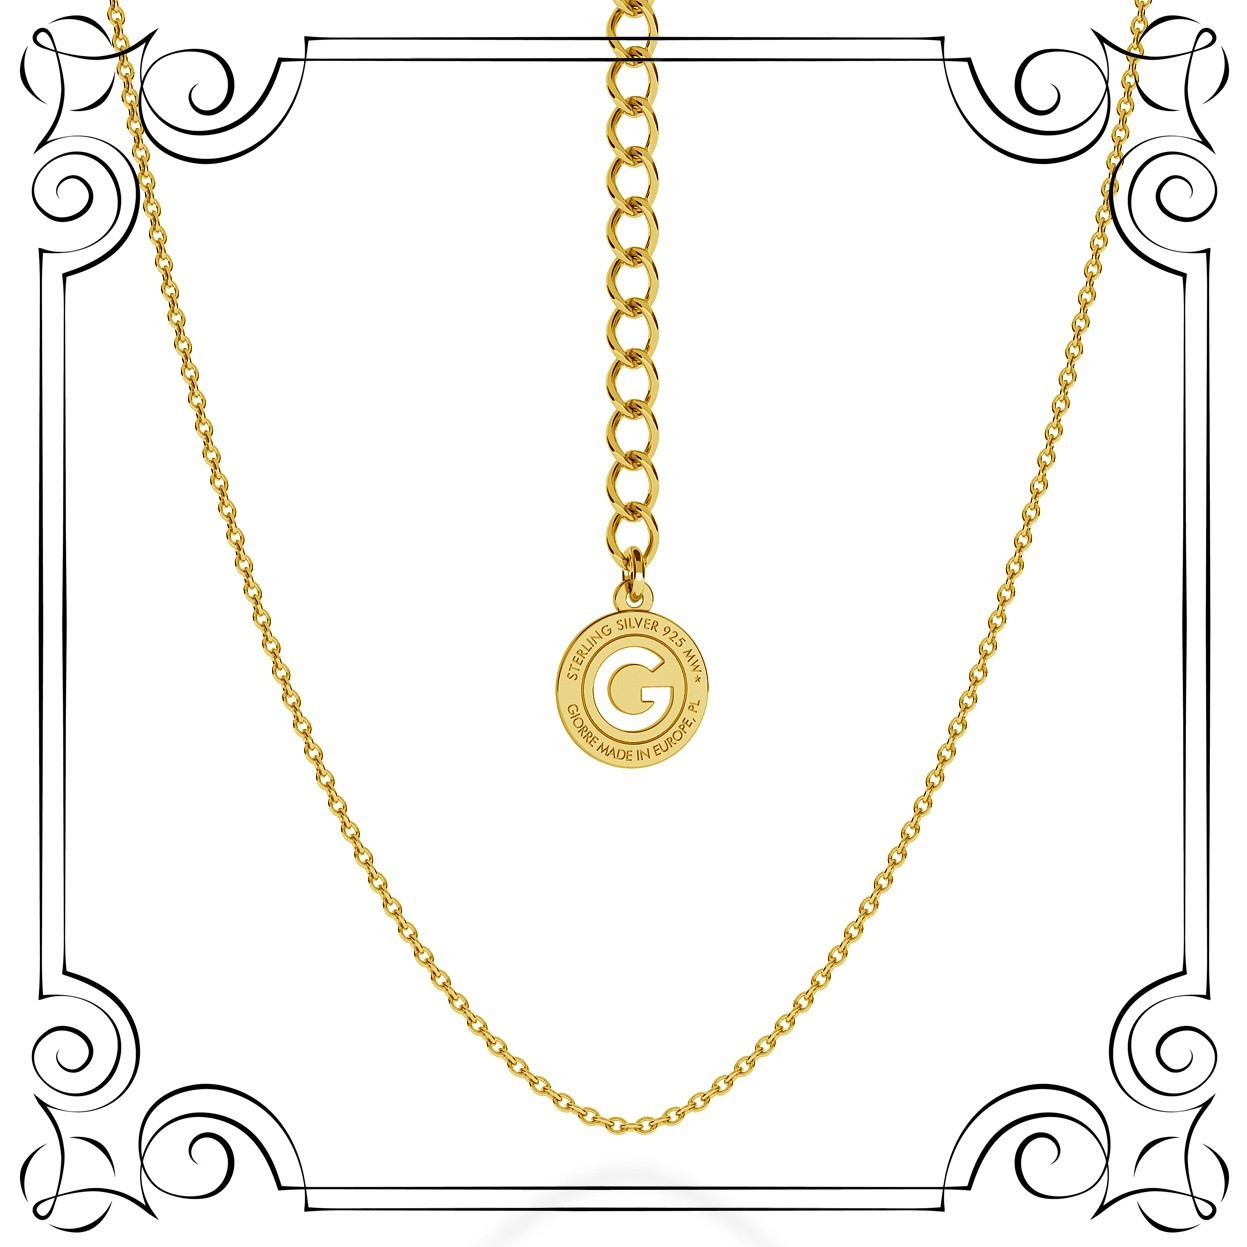 LIGHT SILVER NECKLACE 55 CM, GOLD PLATED (YELLOW GOLD)